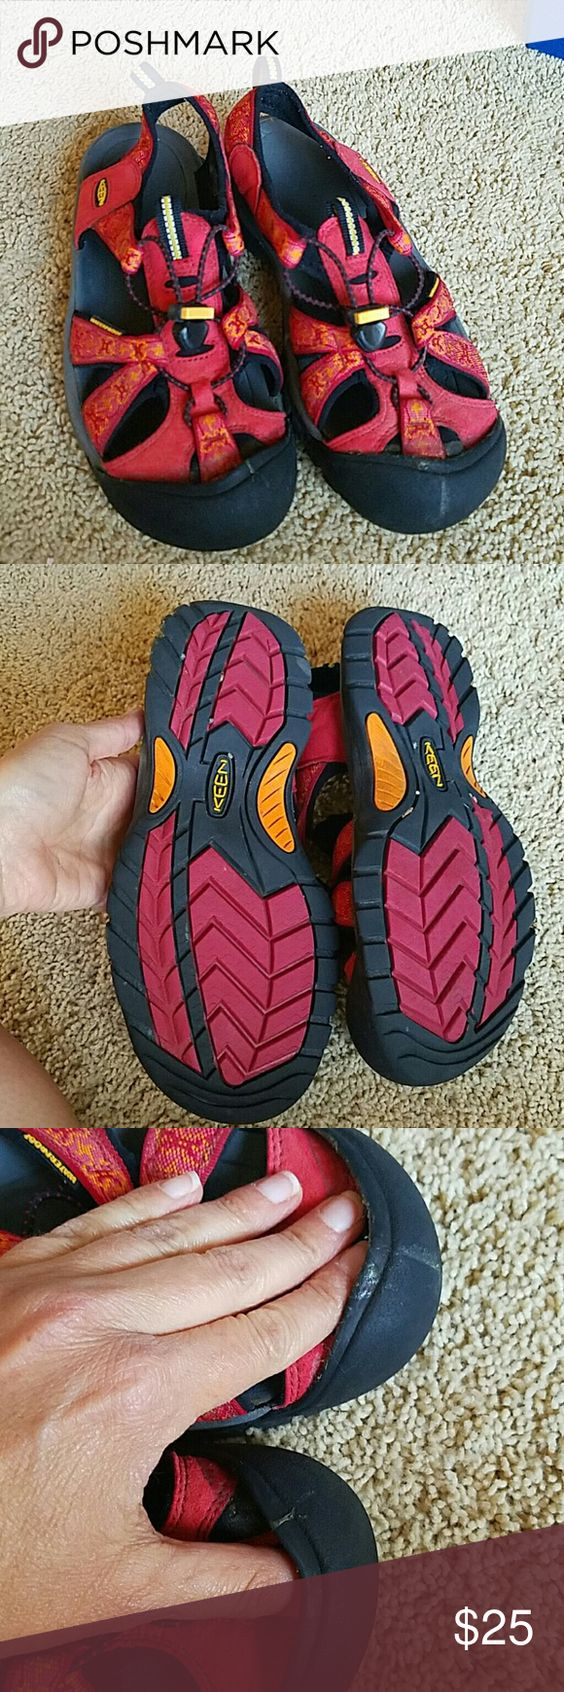 Sandals or shoes for hiking - Keen Water Shoes Keen Shoes Are So Perfect For The Active Woman As A Hiking Sandal